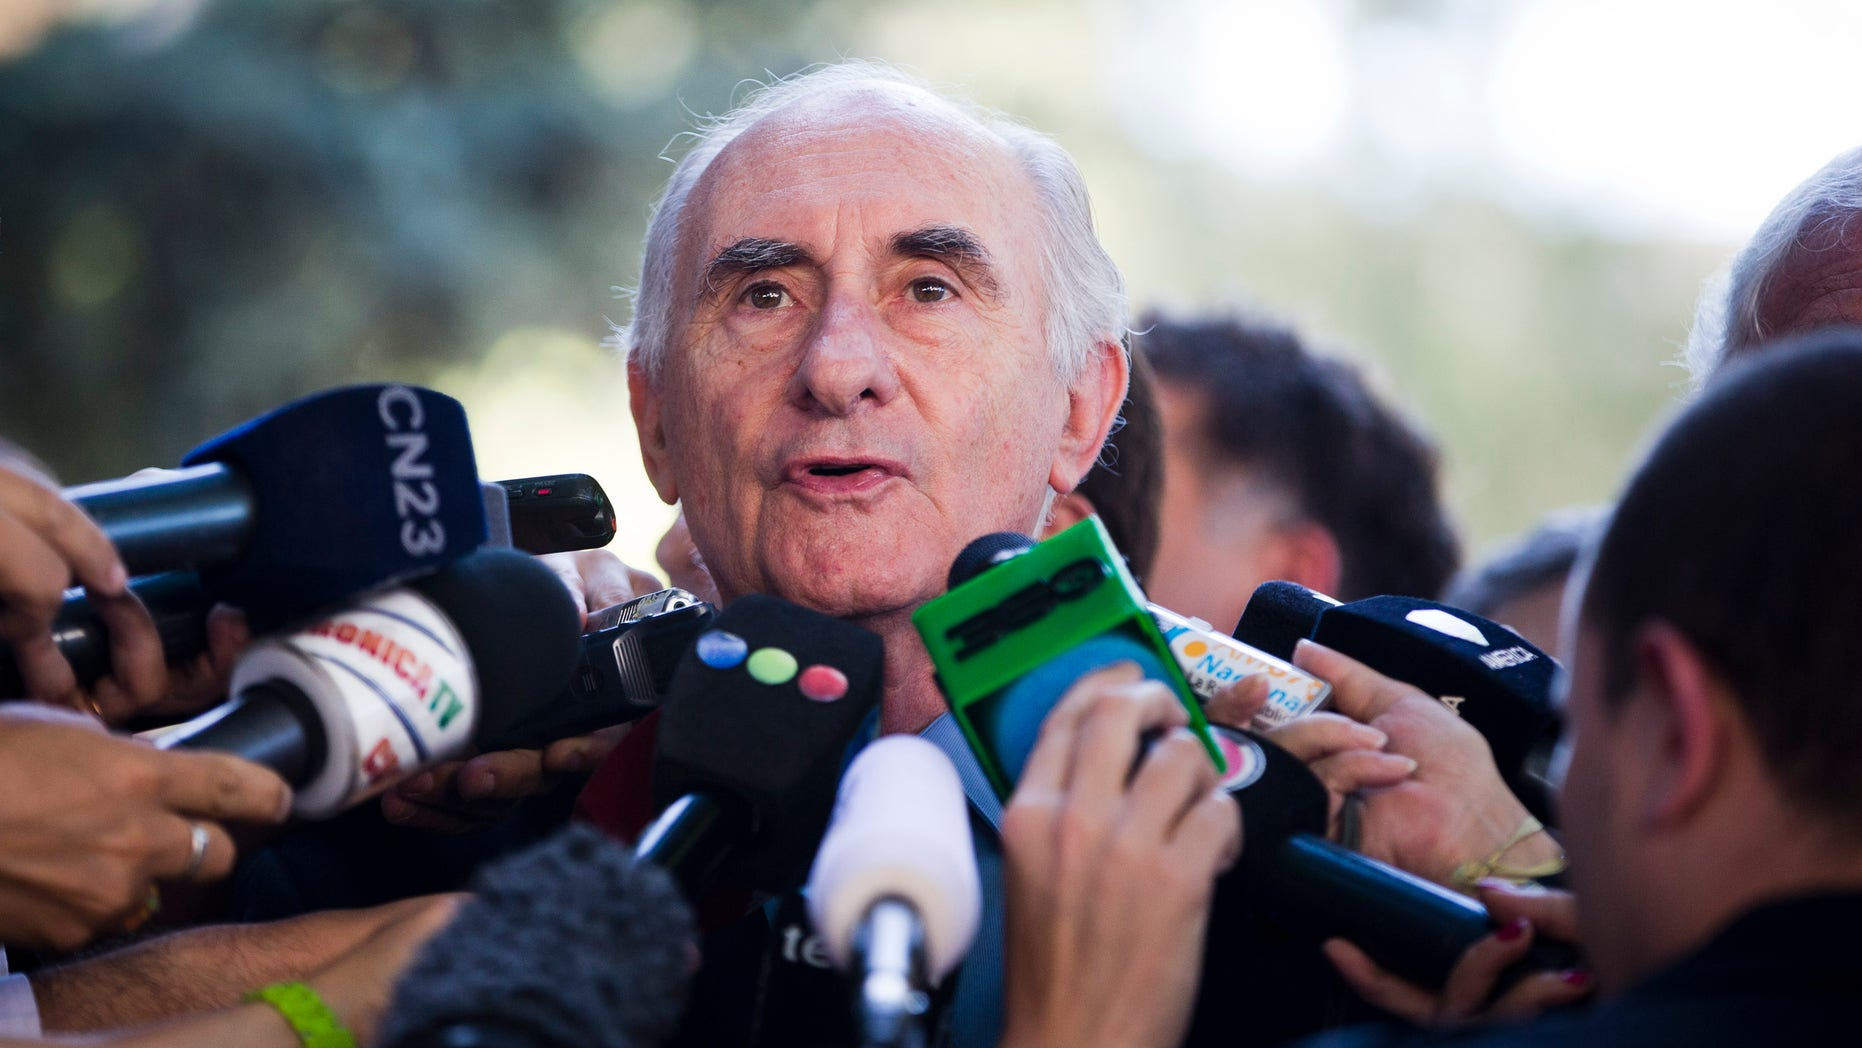 Former Argentine President Fernando de la Rua speaks to the media Monday, Dec. 23, 2013.